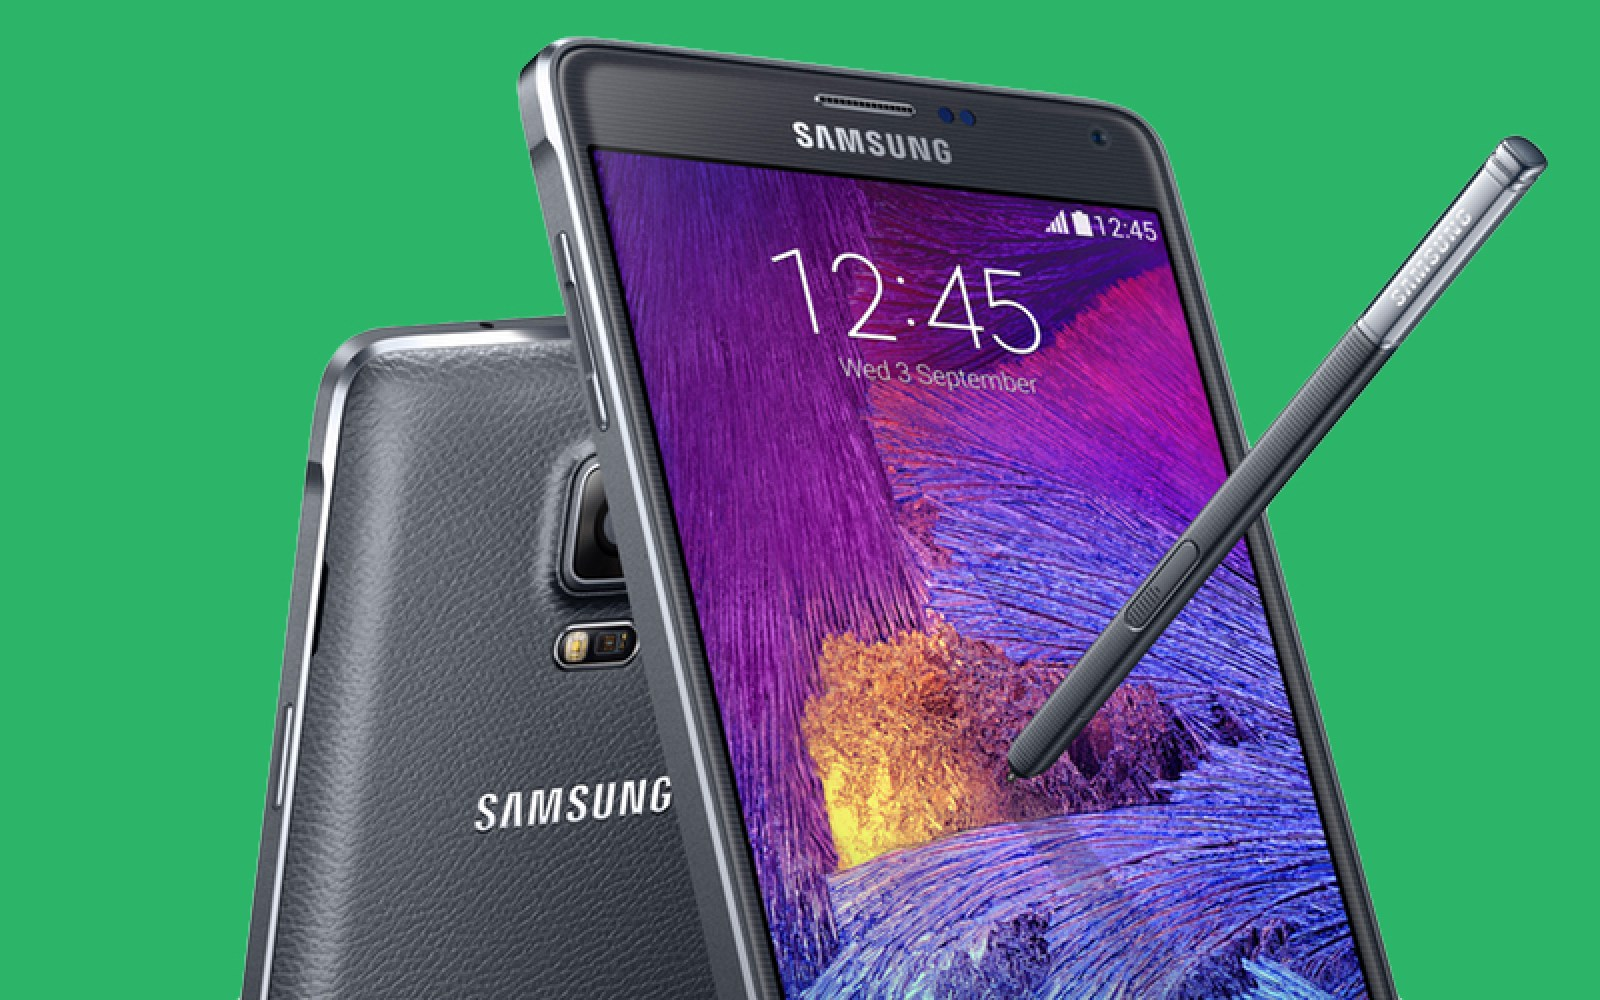 Android Marshmallow update for Samsung Galaxy Note 4 begins international rollout